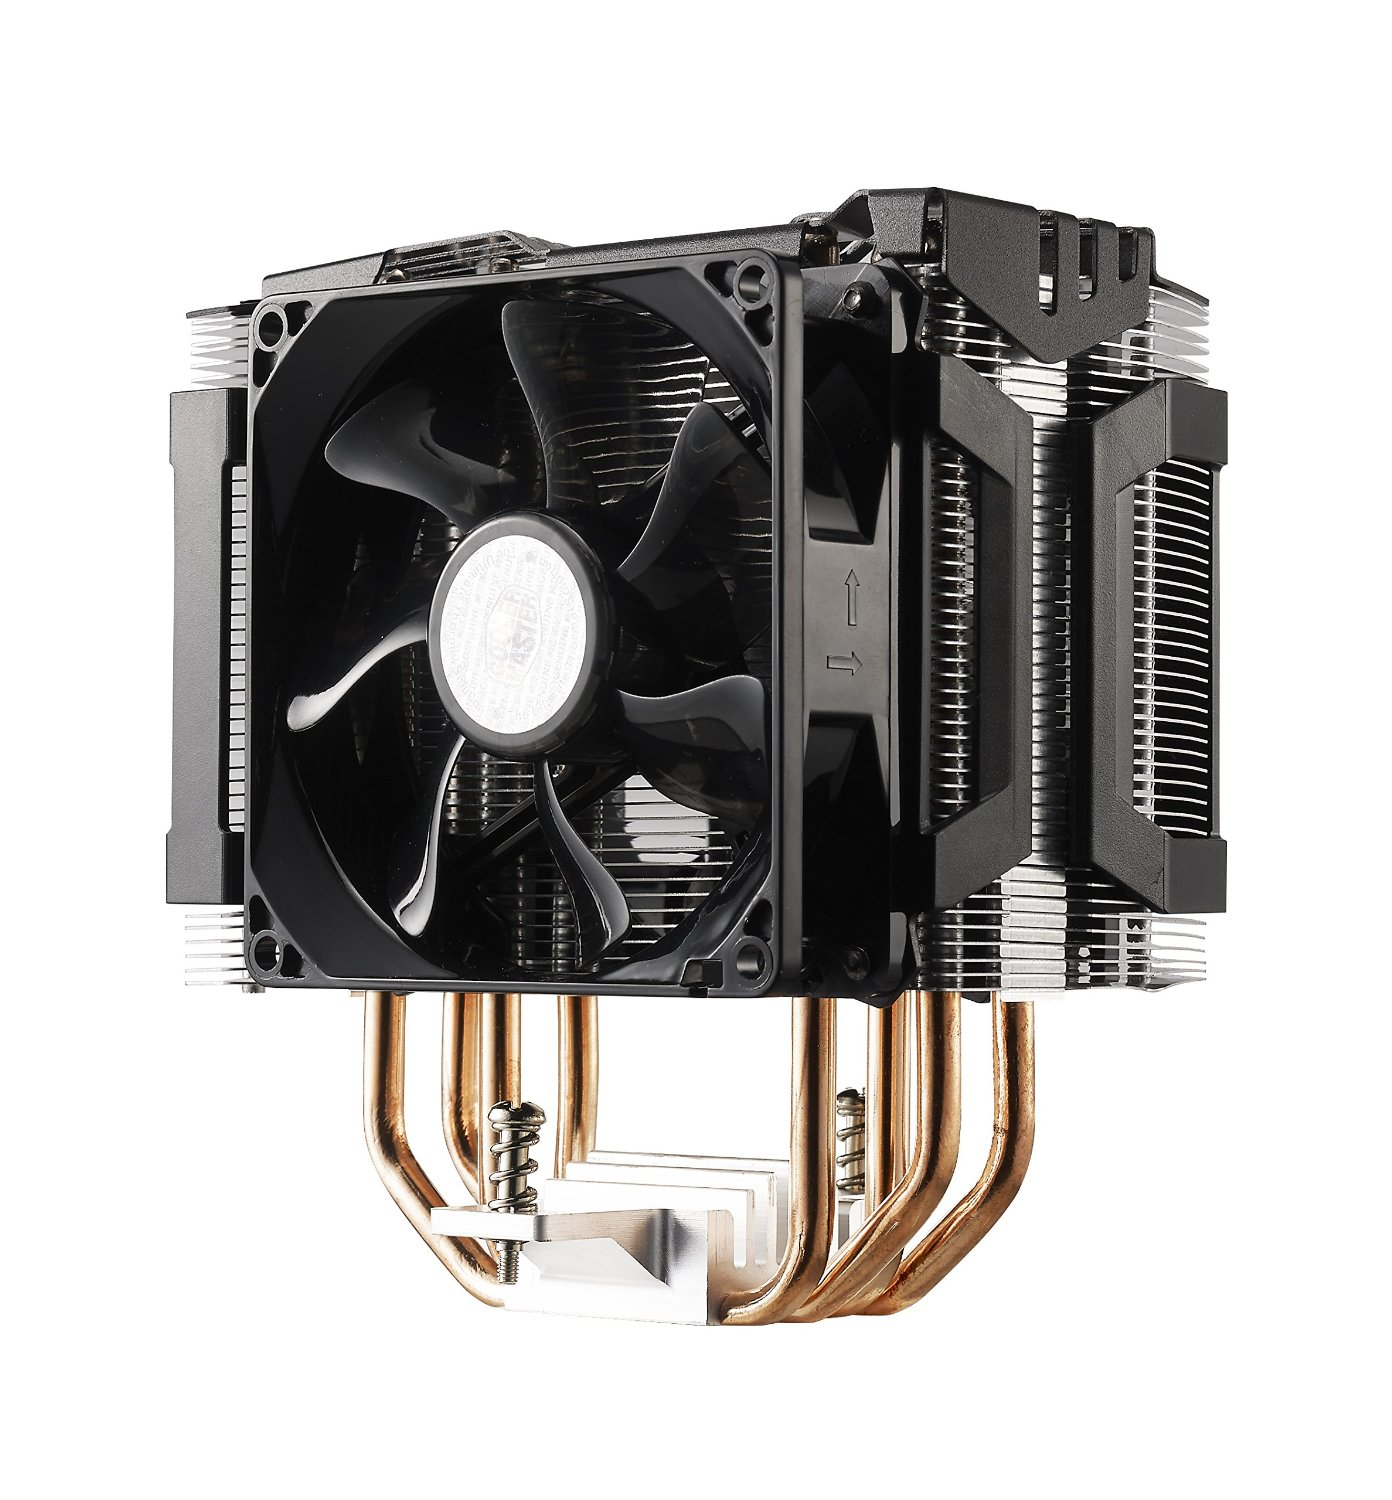 Cooler Master Hyper D92 CPU Air Cooler with Dual 92mm Offset Push-Pull Fans and Accelerated Cooling System... by Cooler Master